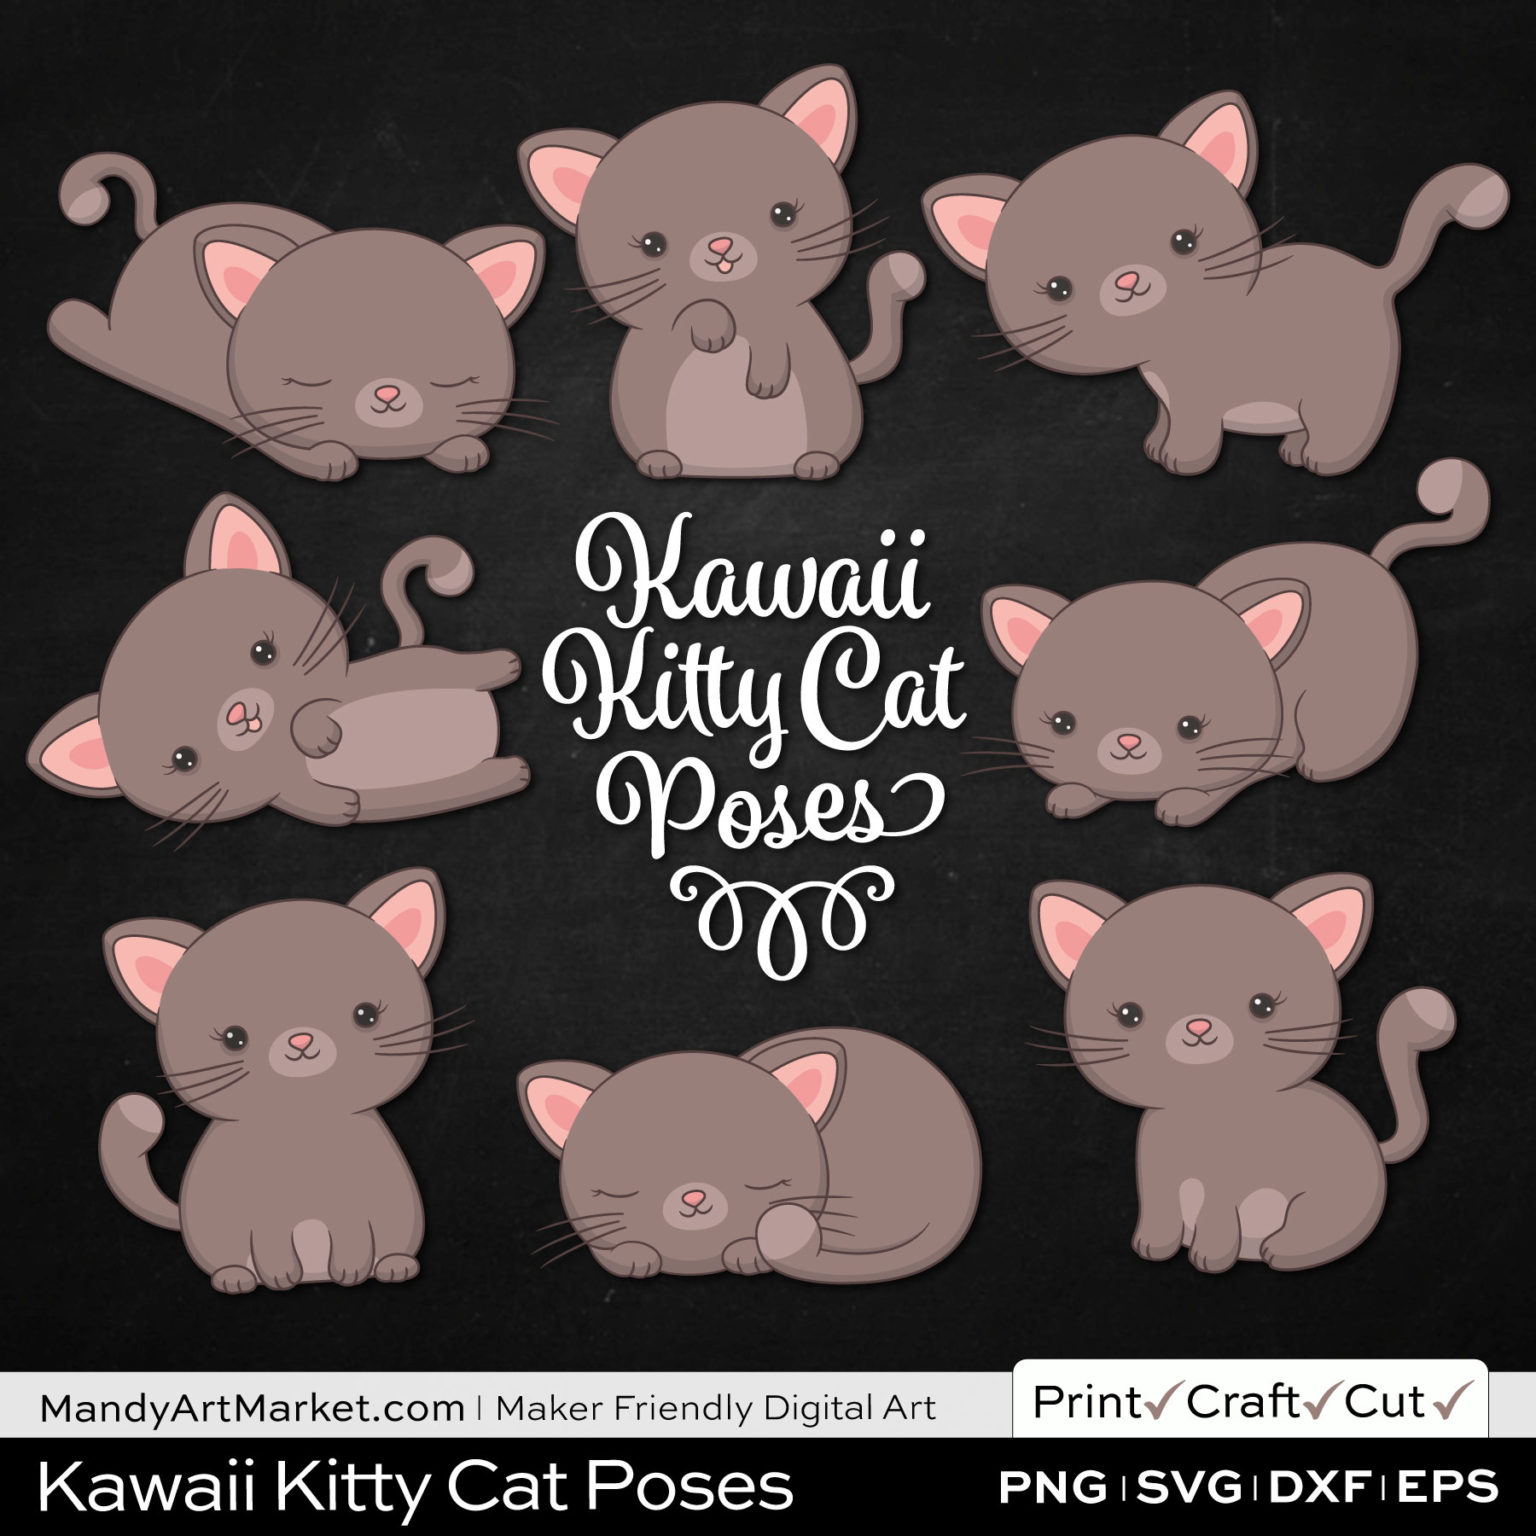 Barnboard Brown Kawaii Kitty Cat Poses Clipart on Black Background